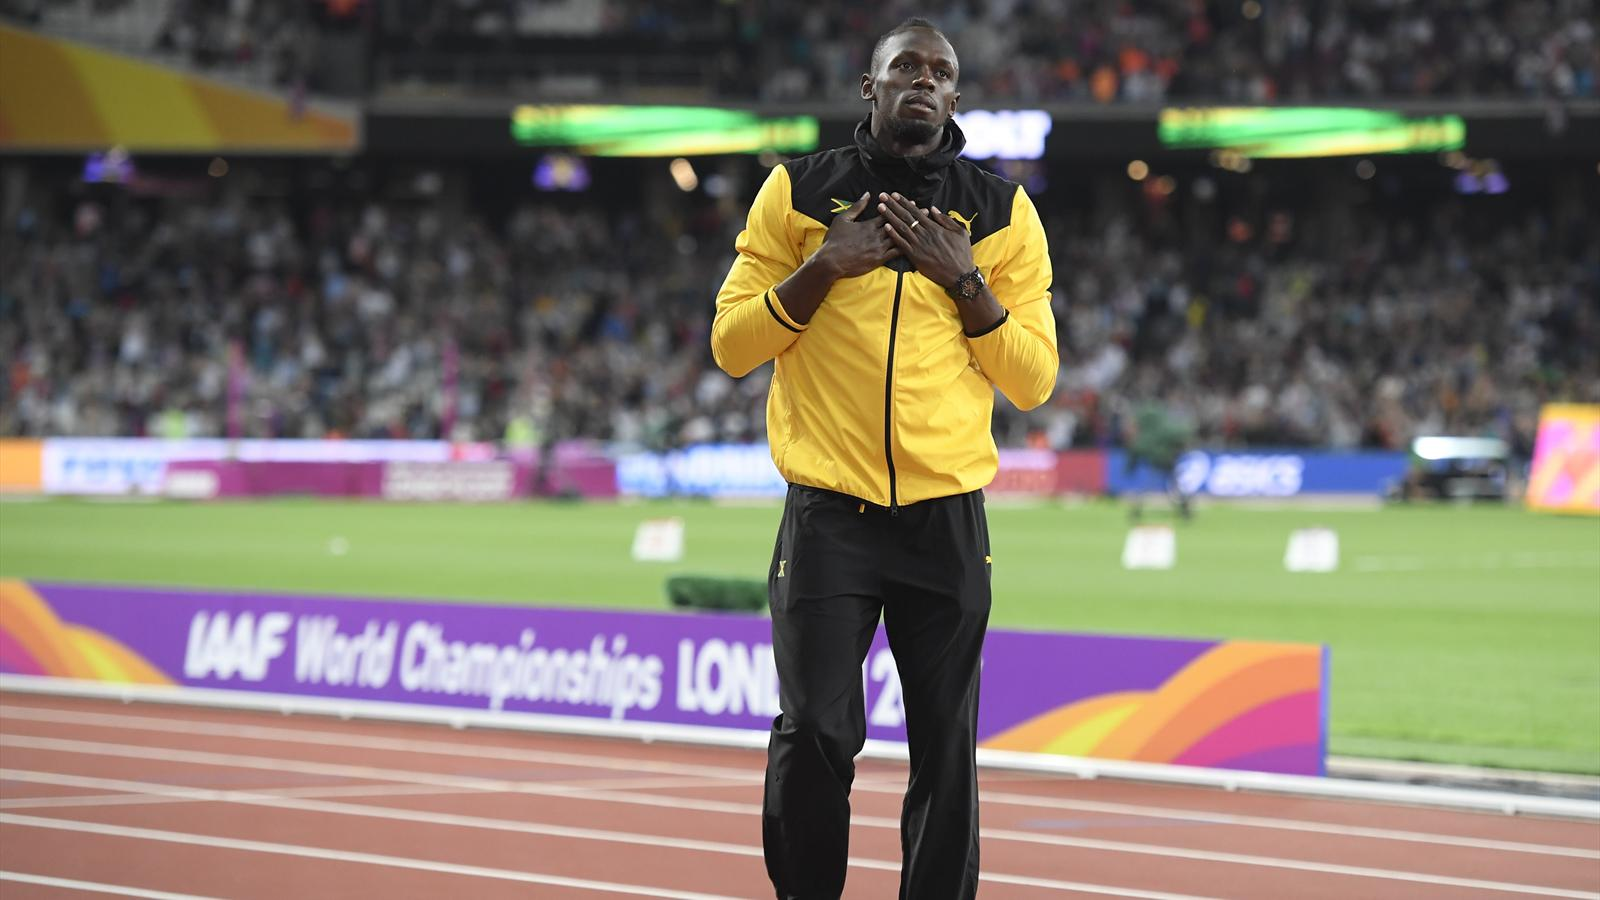 Usain Bolt hits back at people who questioned World Championships injury